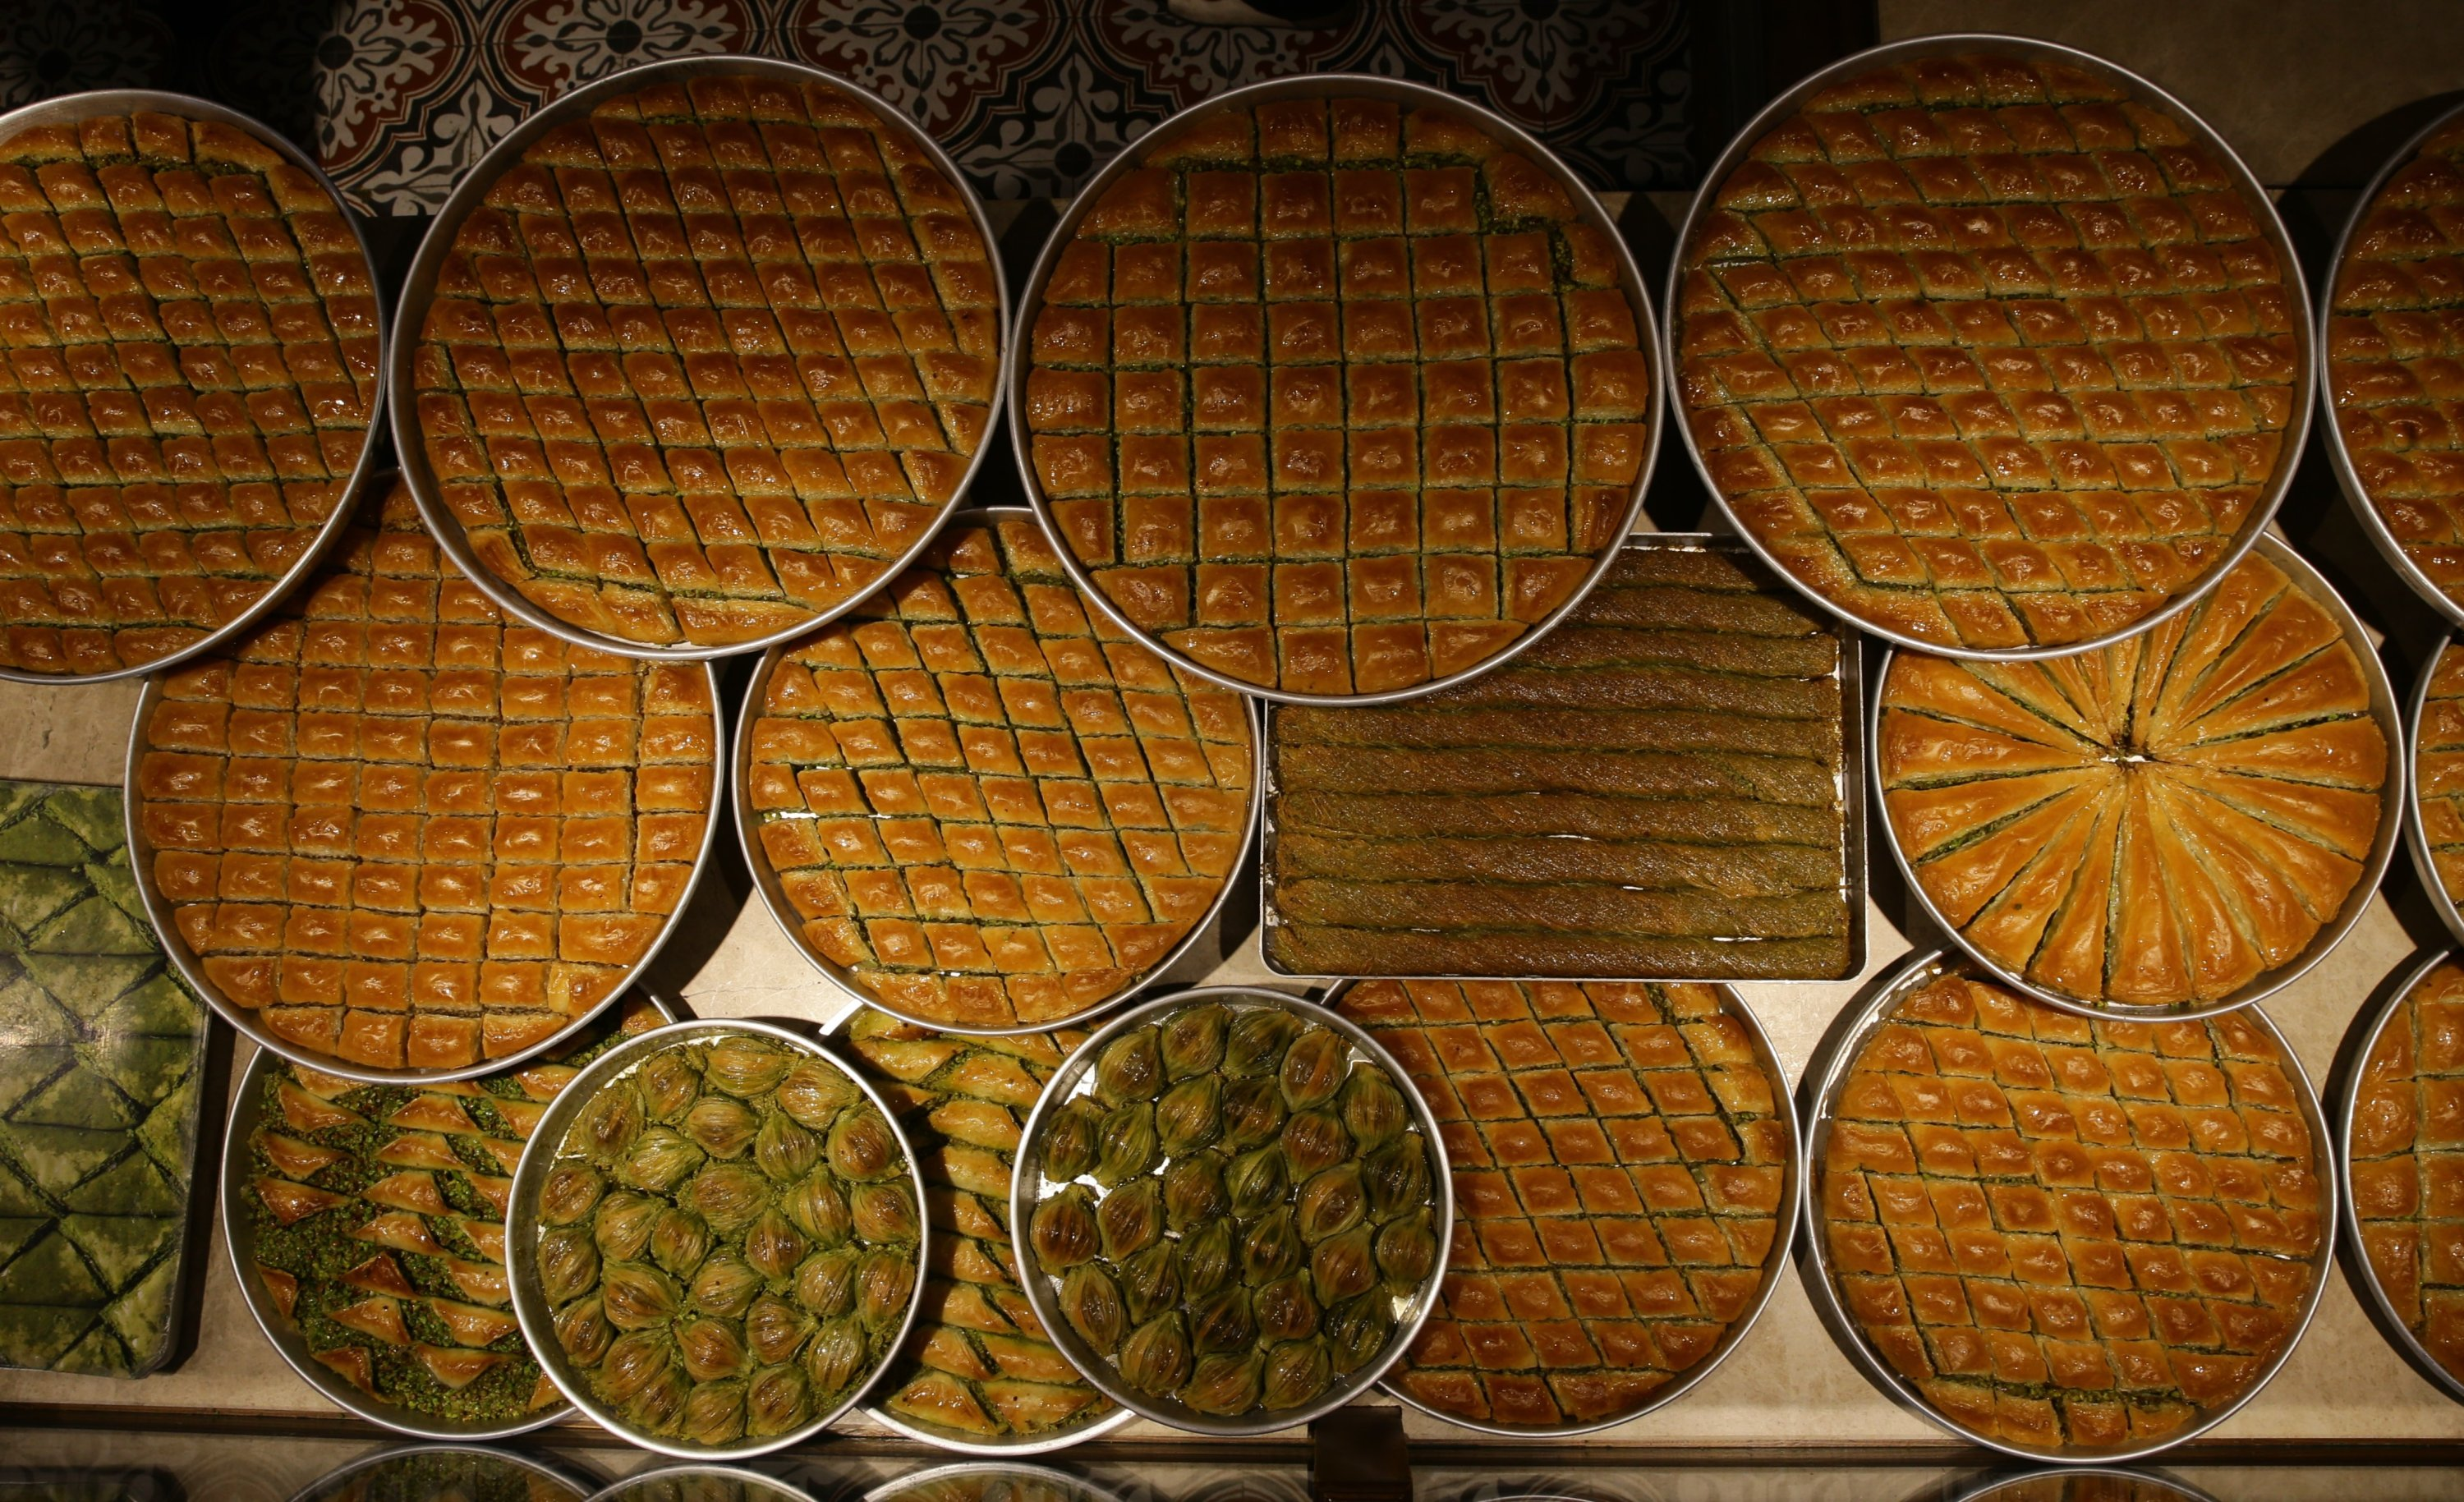 Baklava is the number 1 most requested and consumed dessert during Ramadan Bayram in Turkey. (AA Photo)